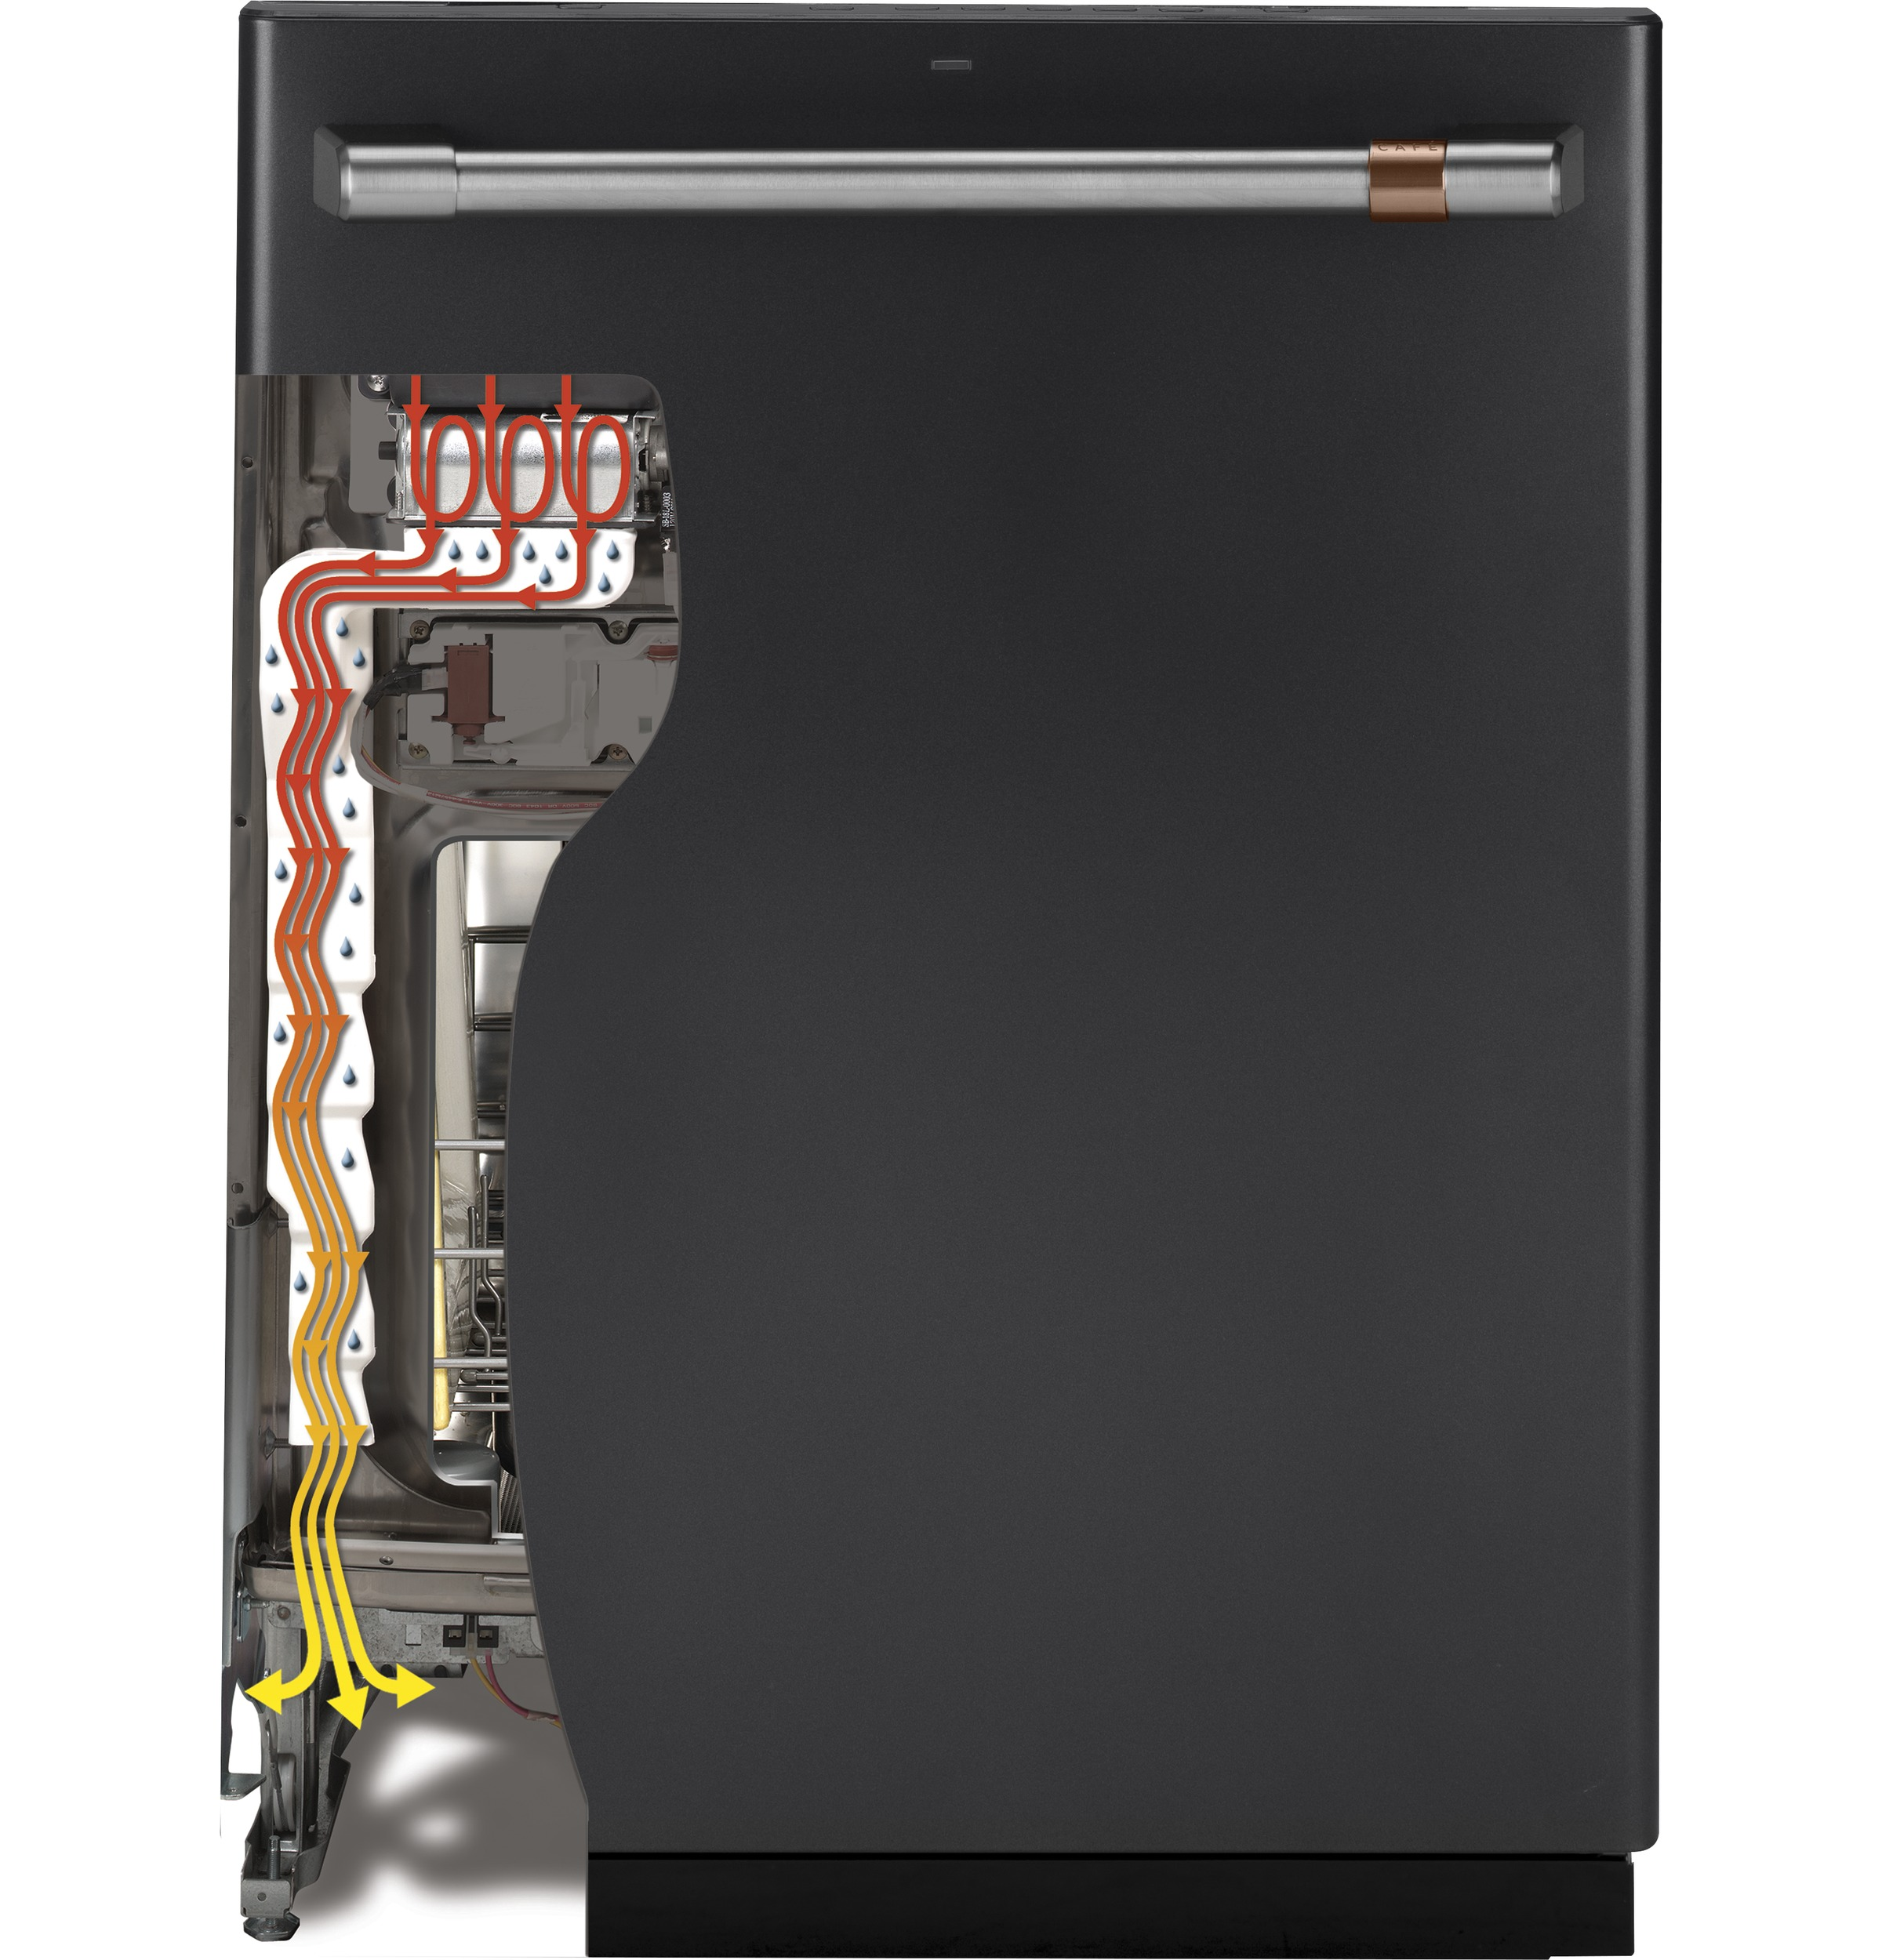 Model: CDT706P2MS1 | GE Cafe GE Café™ Series Stainless Interior Built-In Dishwasher with Hidden Controls